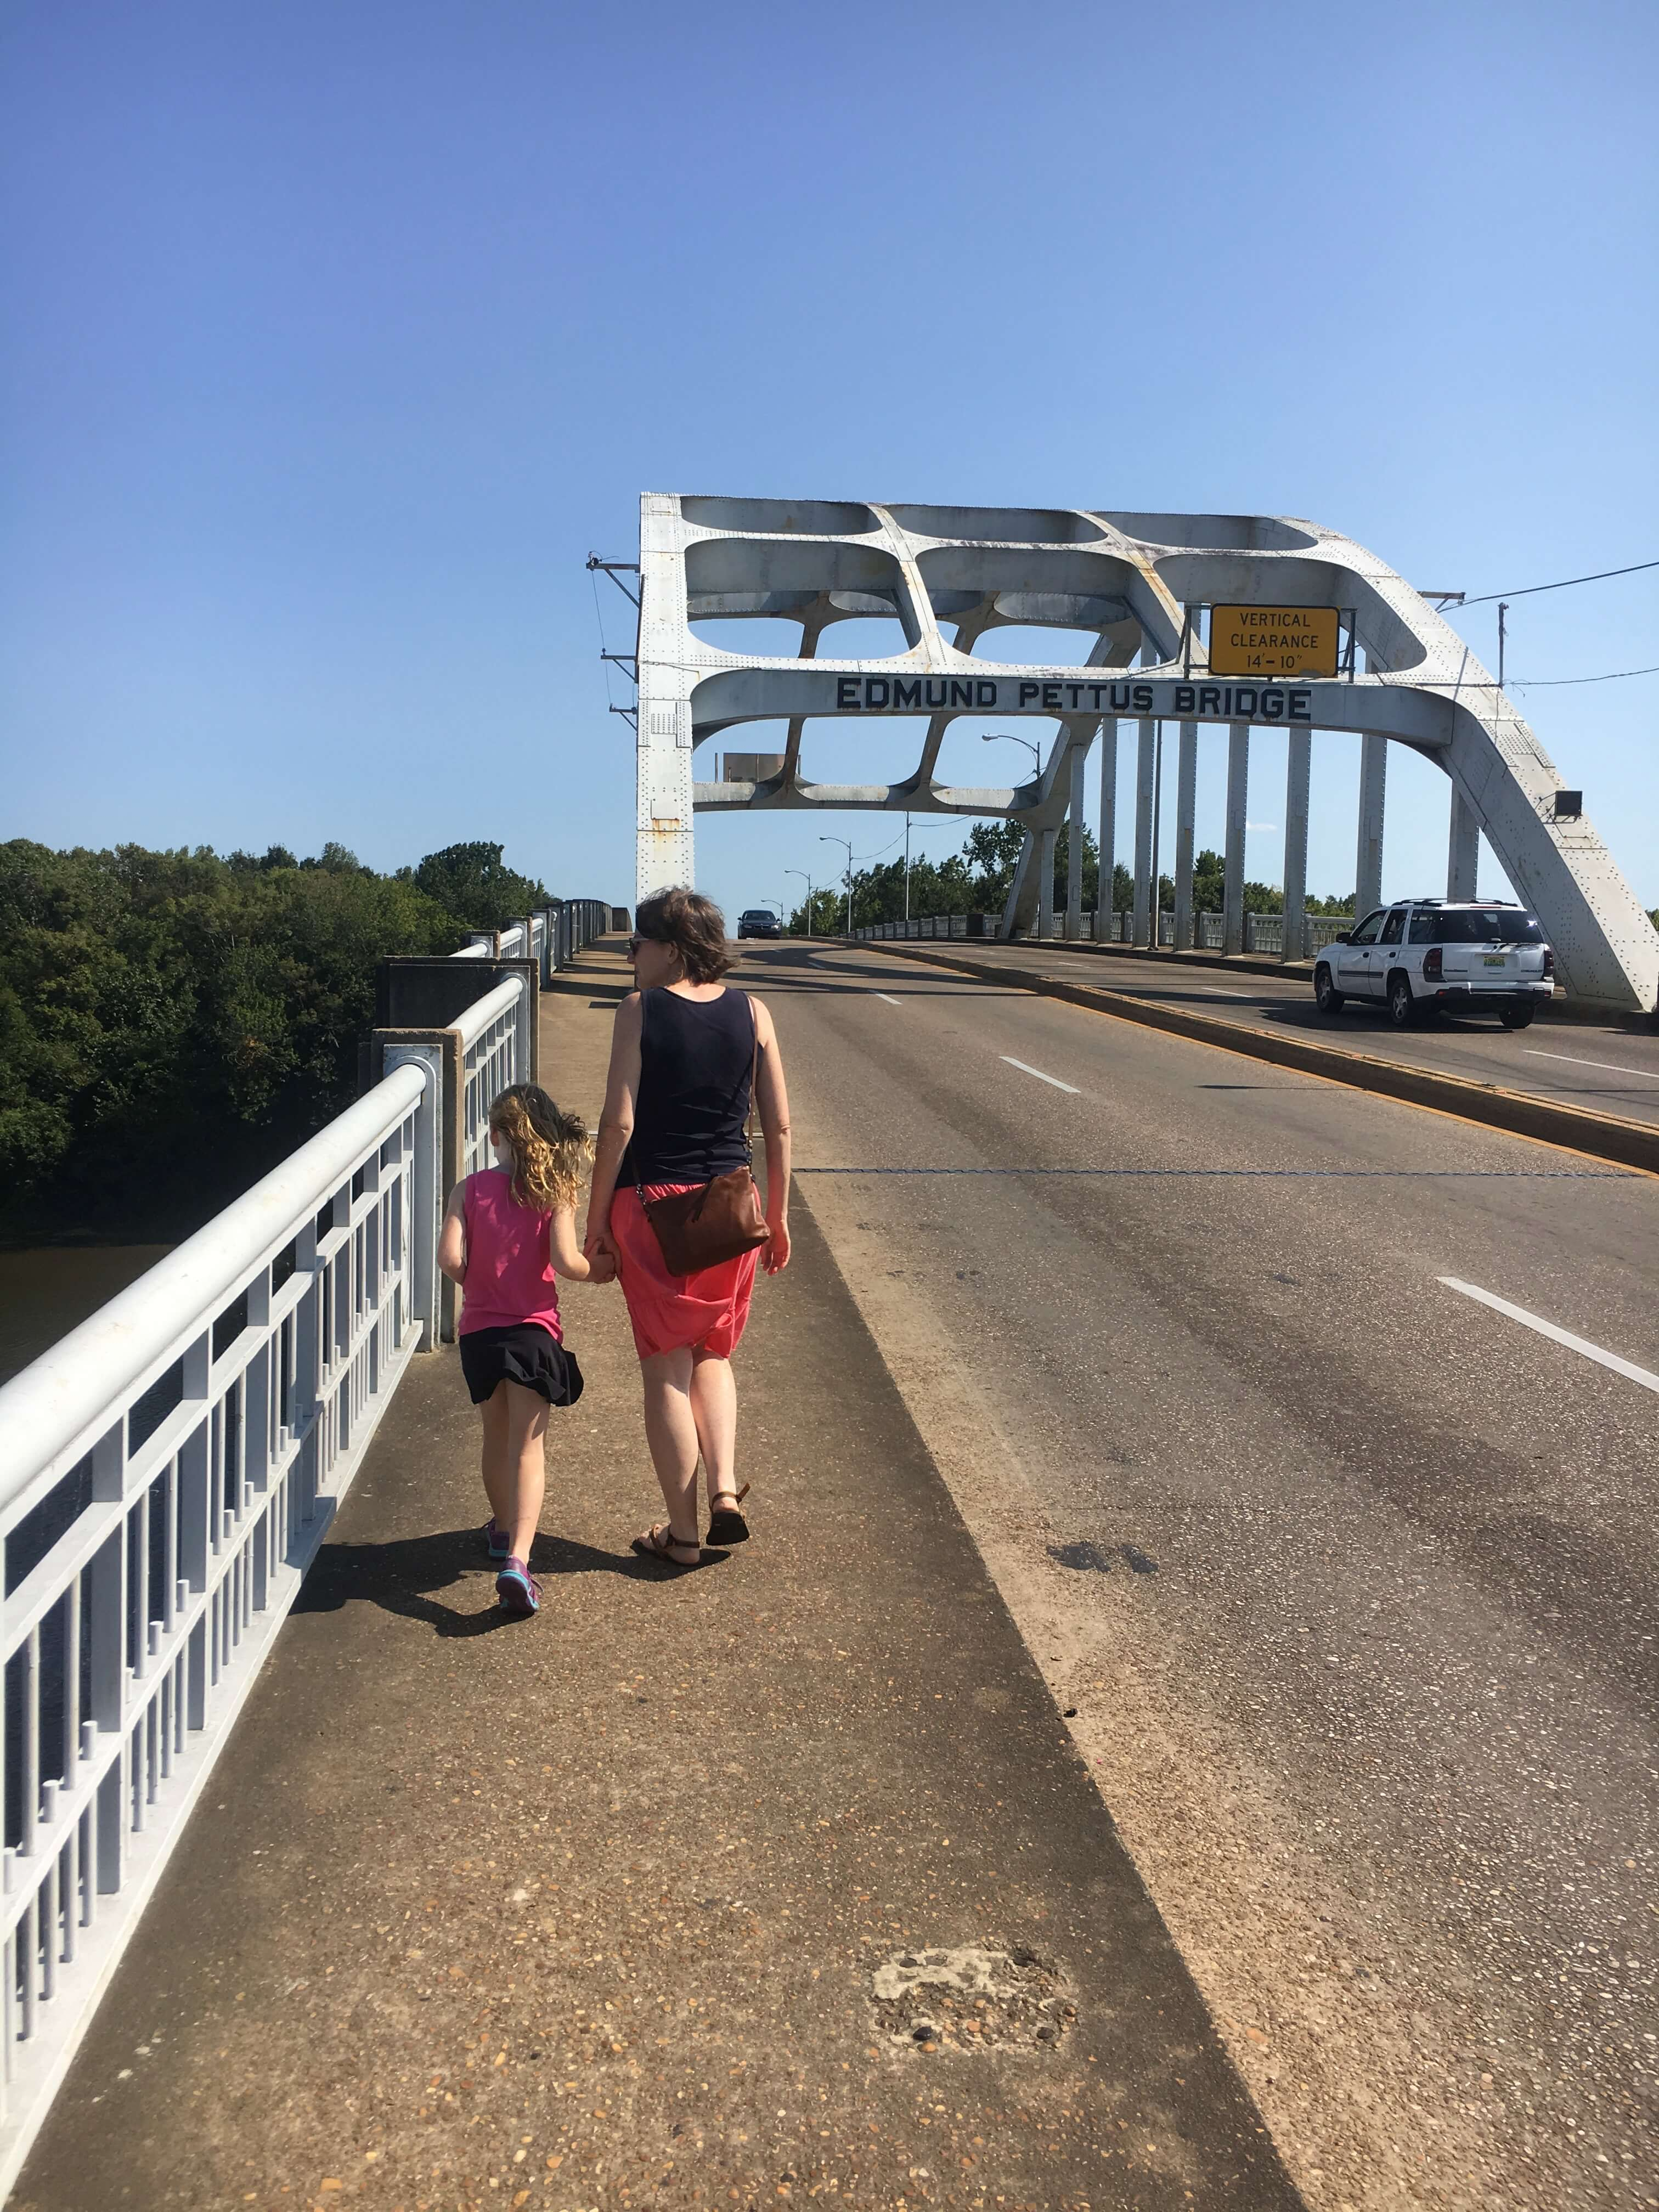 pettus girls It was fifty-three years ago today when hundreds of marchers crossed the edmund pettus bridge on their way from selma to montgomery to claim their right to vote today we remember bloody.